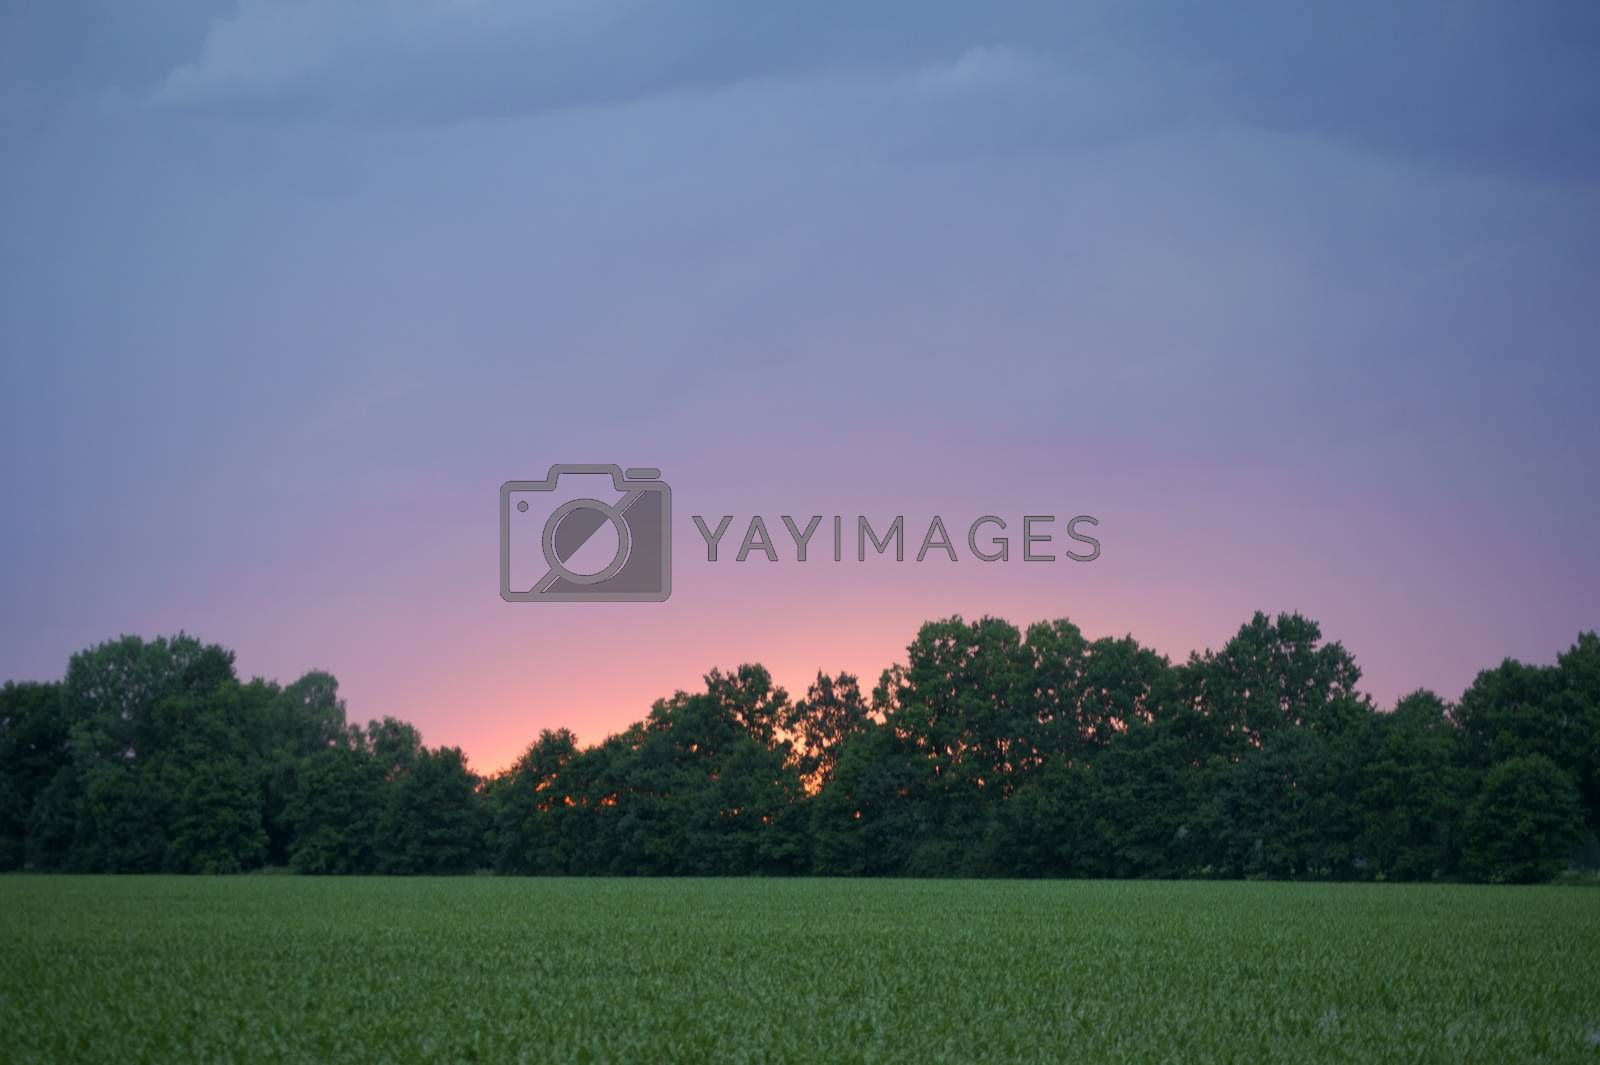 A red-yellow and pink colored sunset with the sun which sets behind a row of trees.